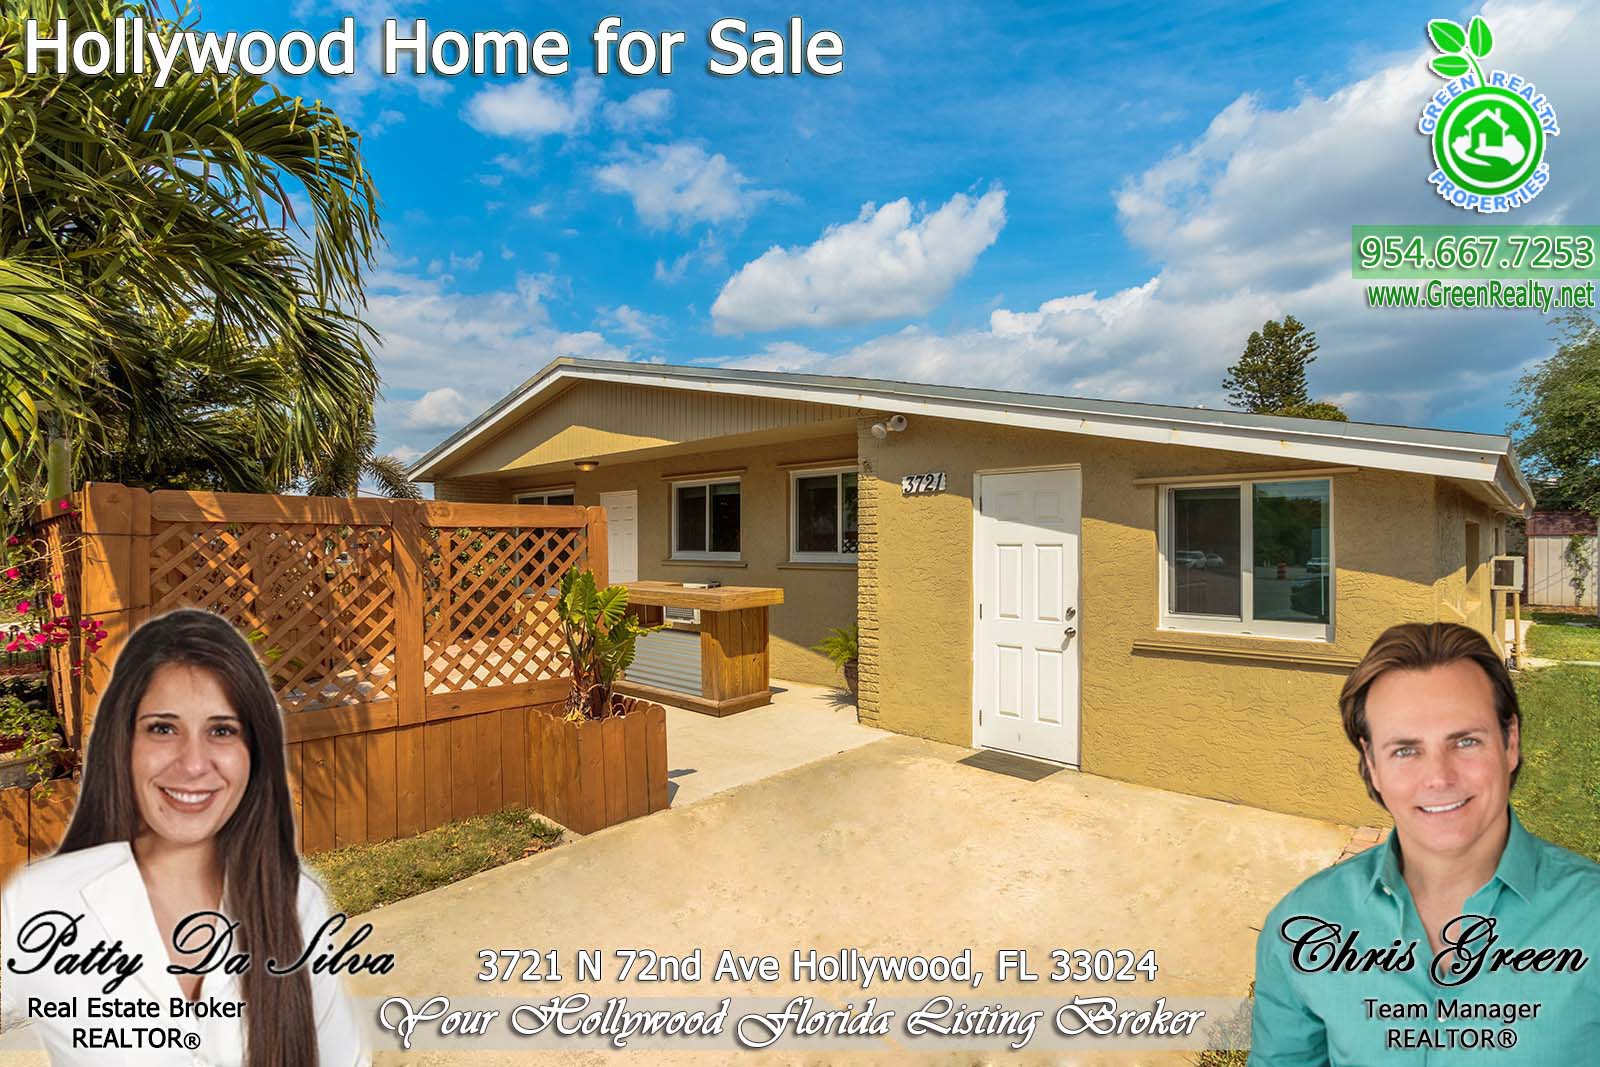 1 Patty-Da-Silva-Hollywood-Home-For-Sale-Real-Estate-Broker